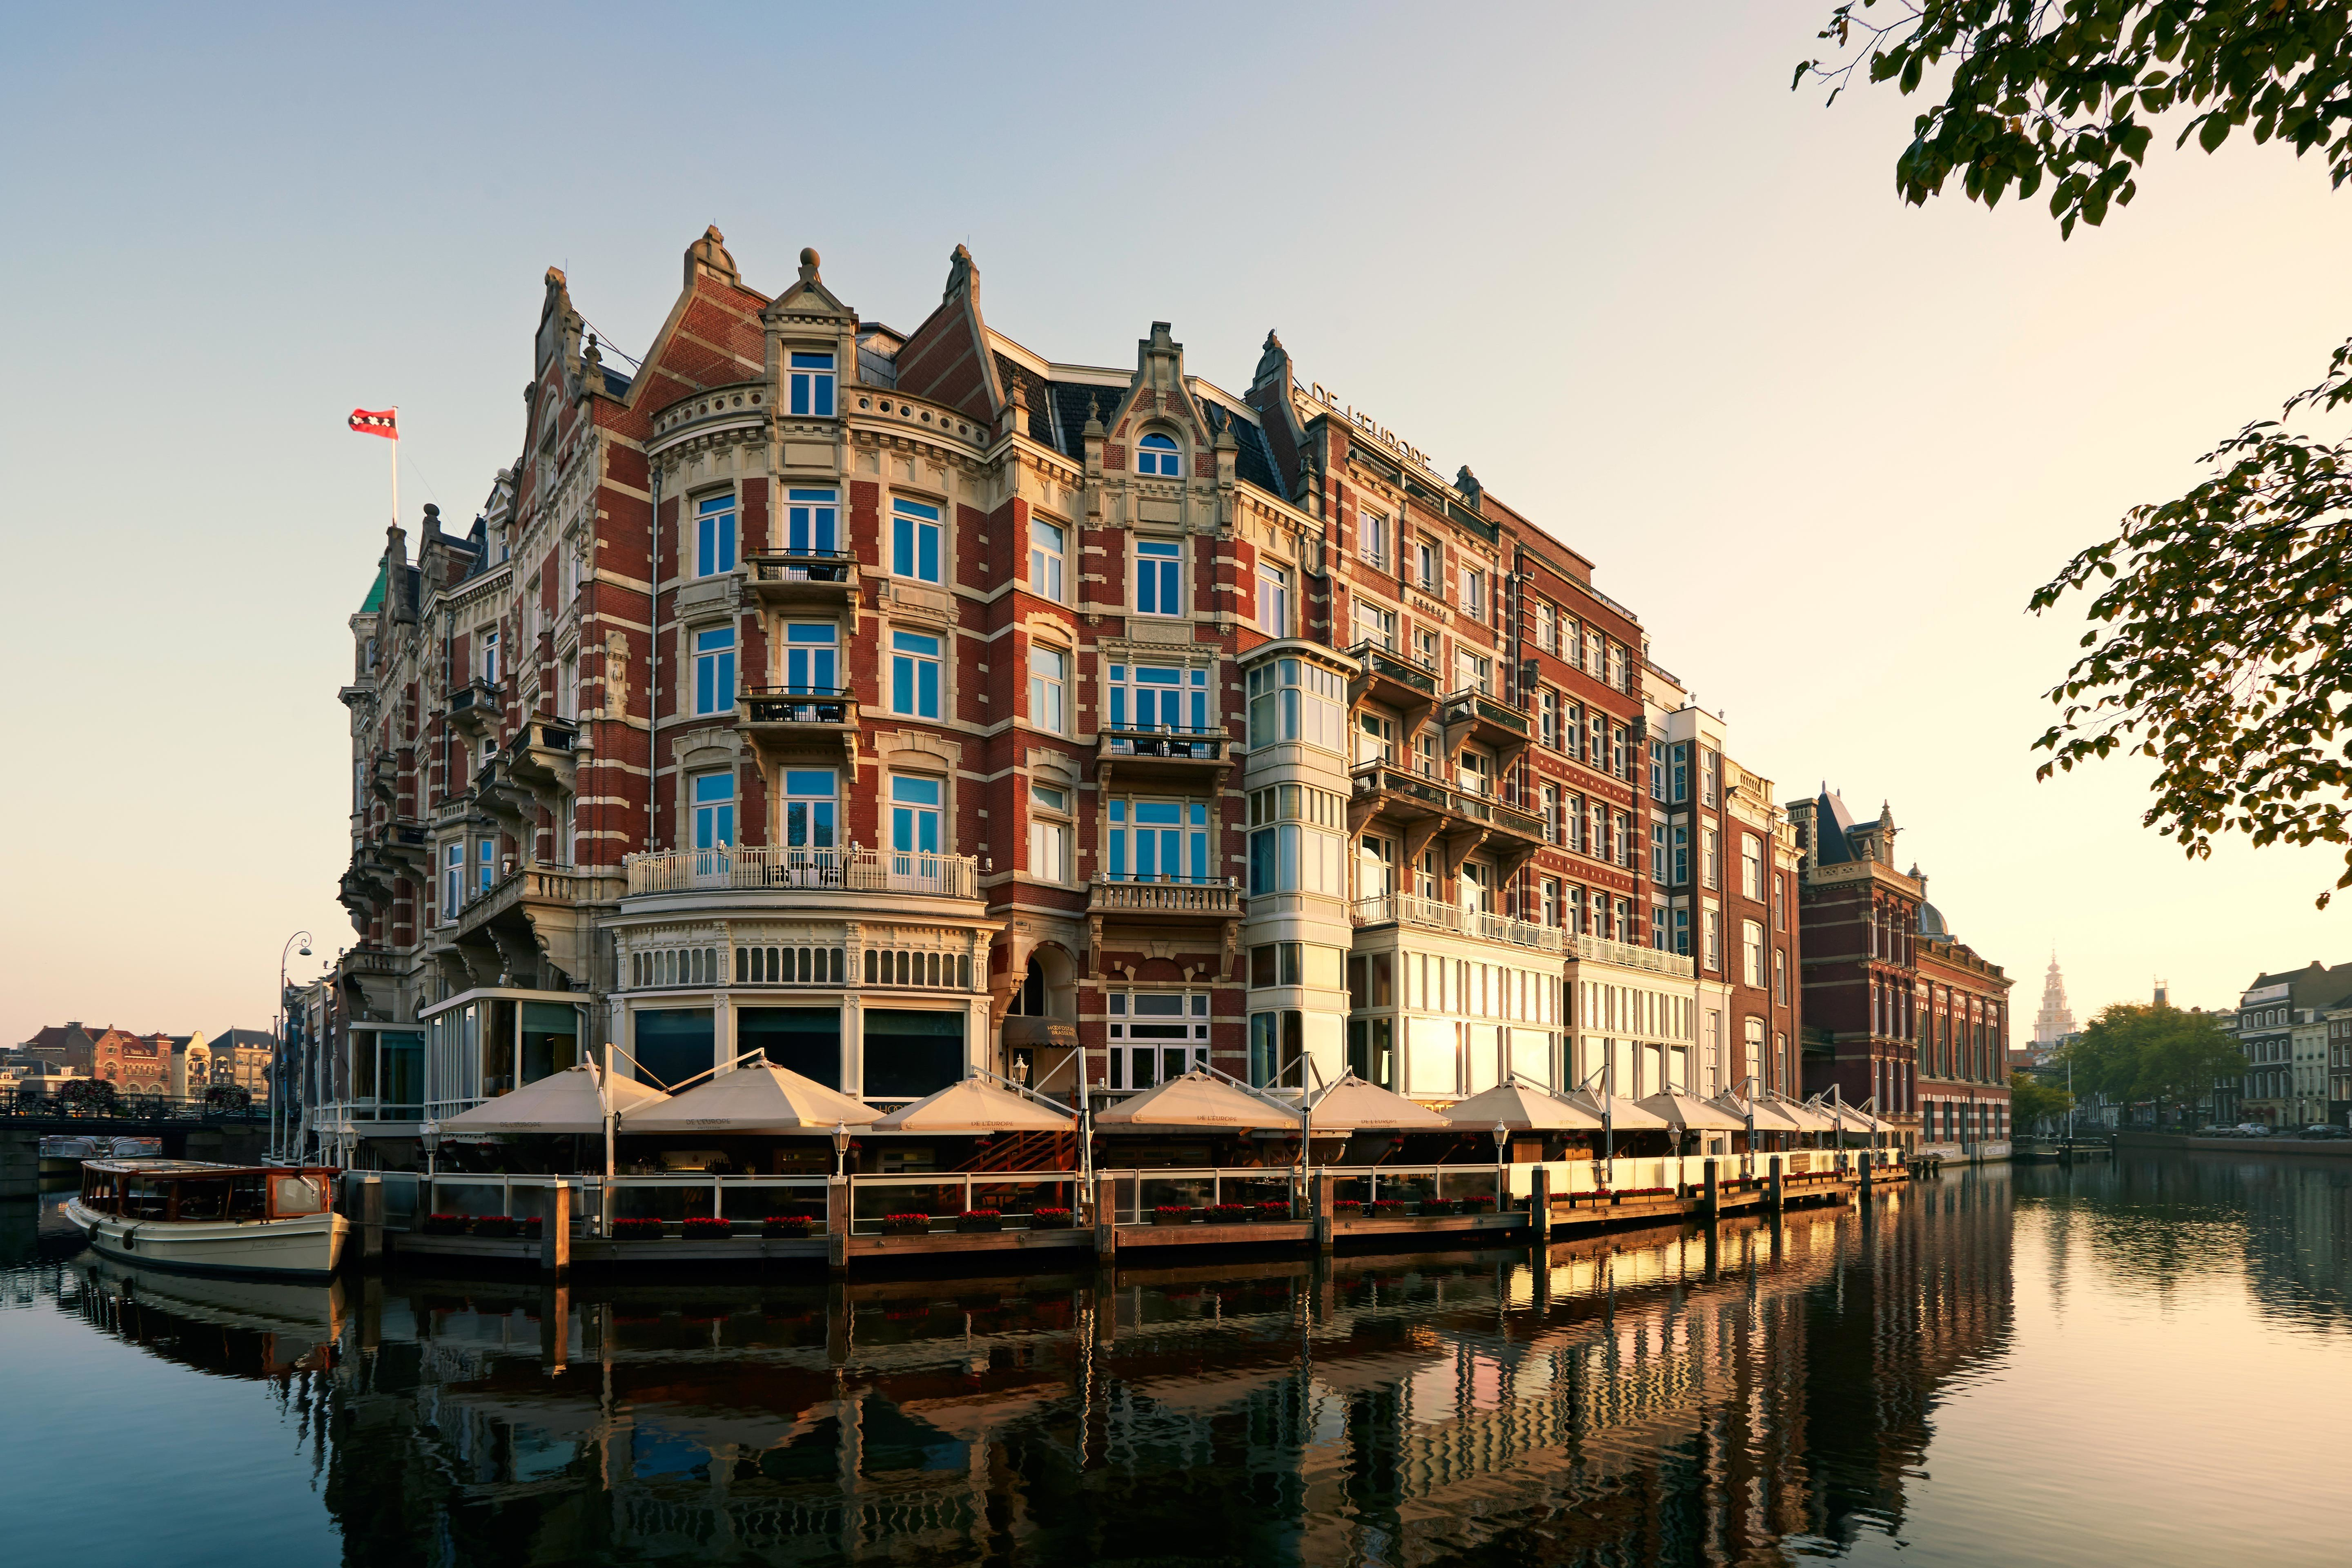 Amsterdam Architecture Buildings City Elegant Historic Hotels Lake The Netherlands Waterfront water outdoor sky Boat scene landmark reflection waterway River vehicle Harbor Canal tourism cityscape